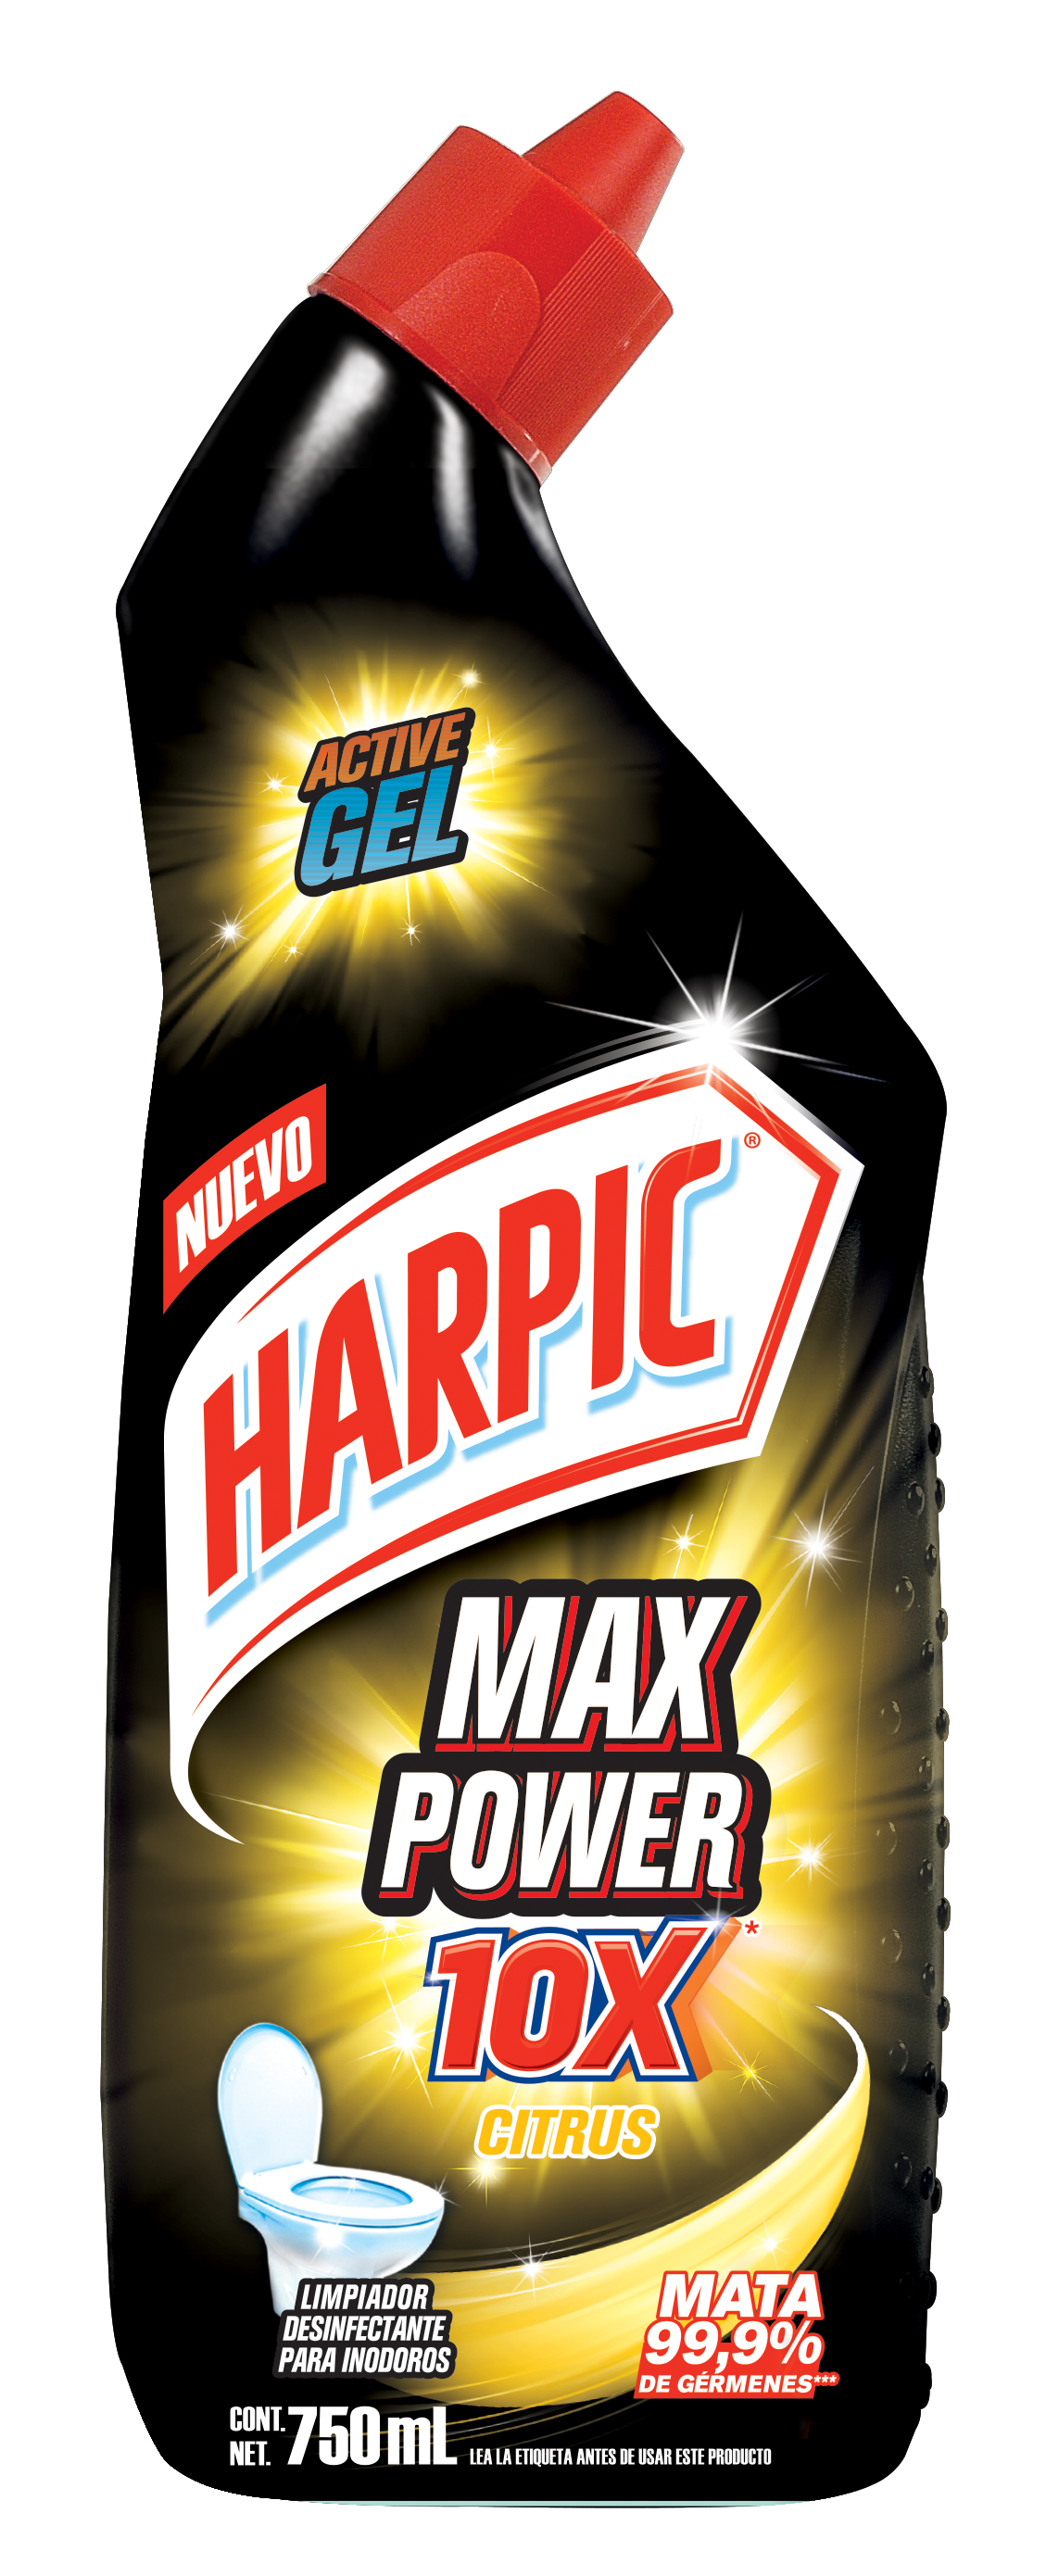 Harpic® Max Power 10x Citrus 750ml